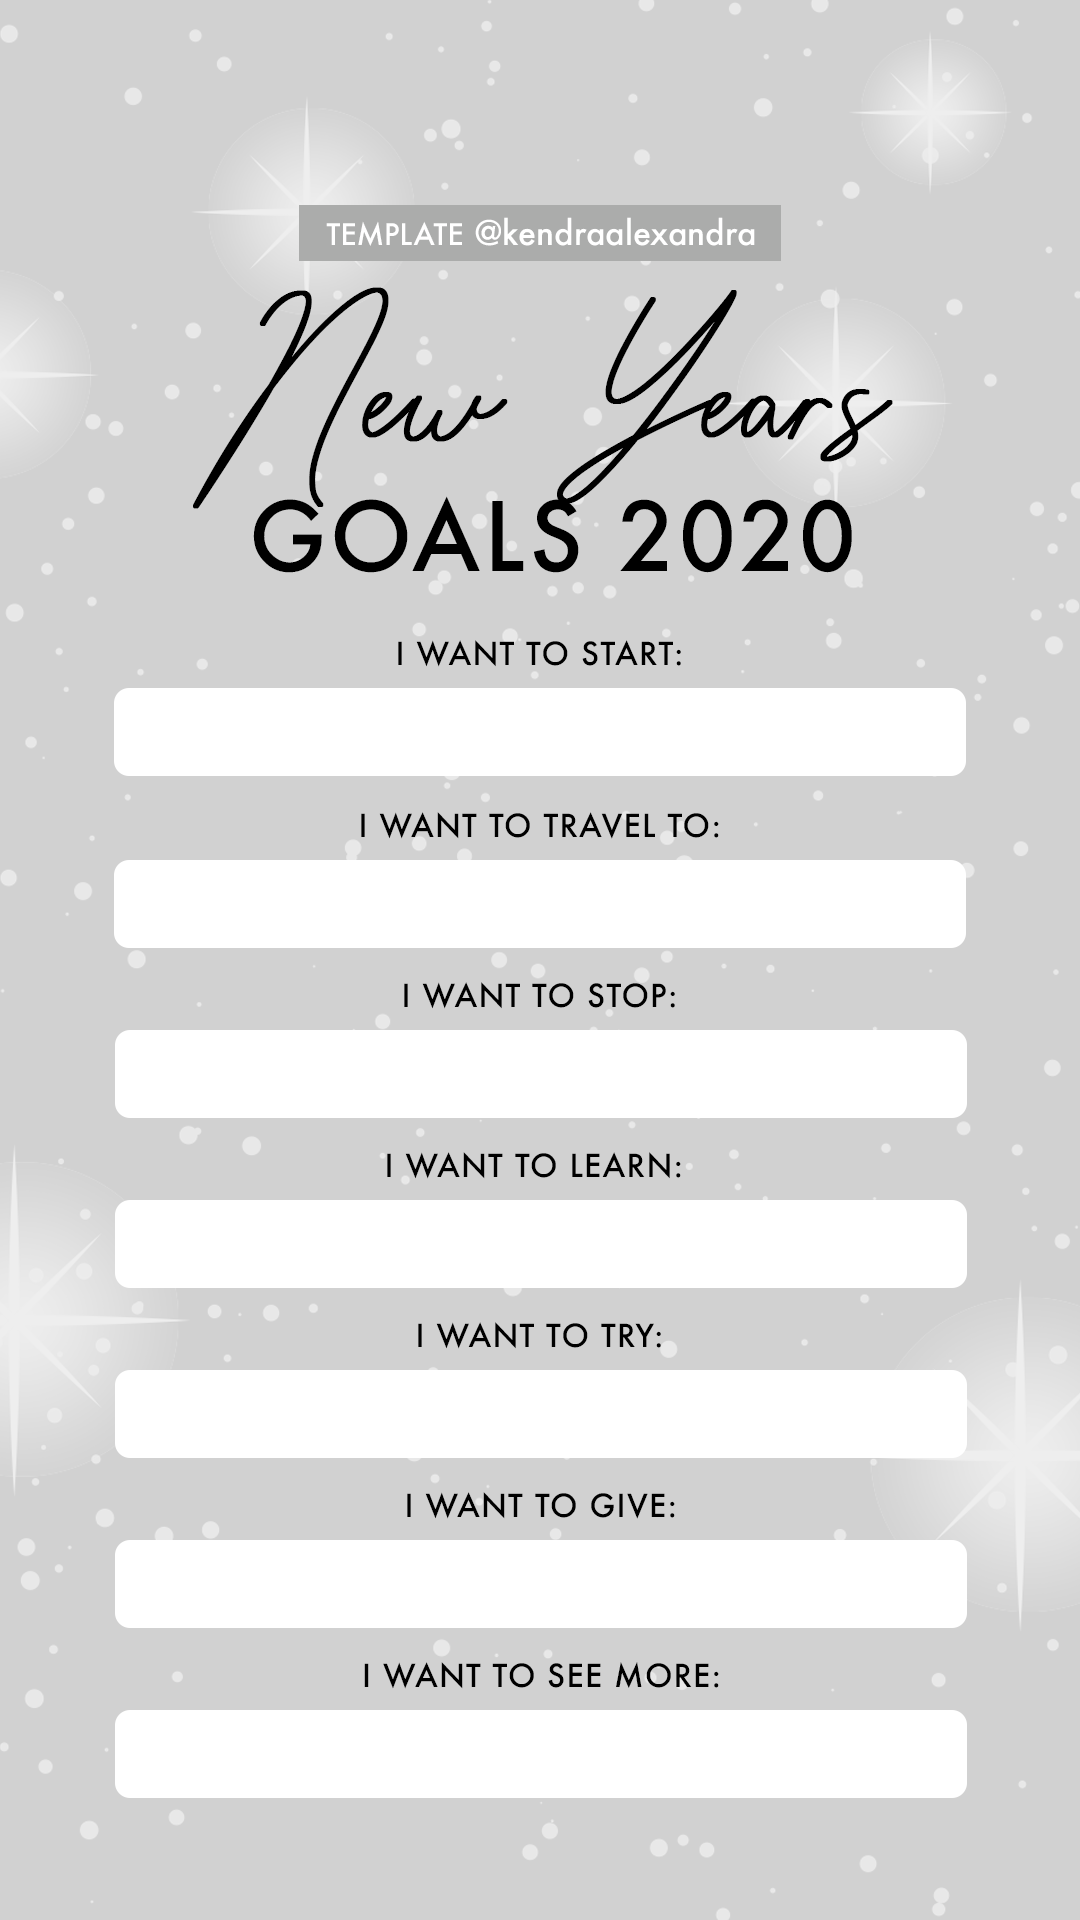 2020 New Years Goals Resolutions Instagram Story Template